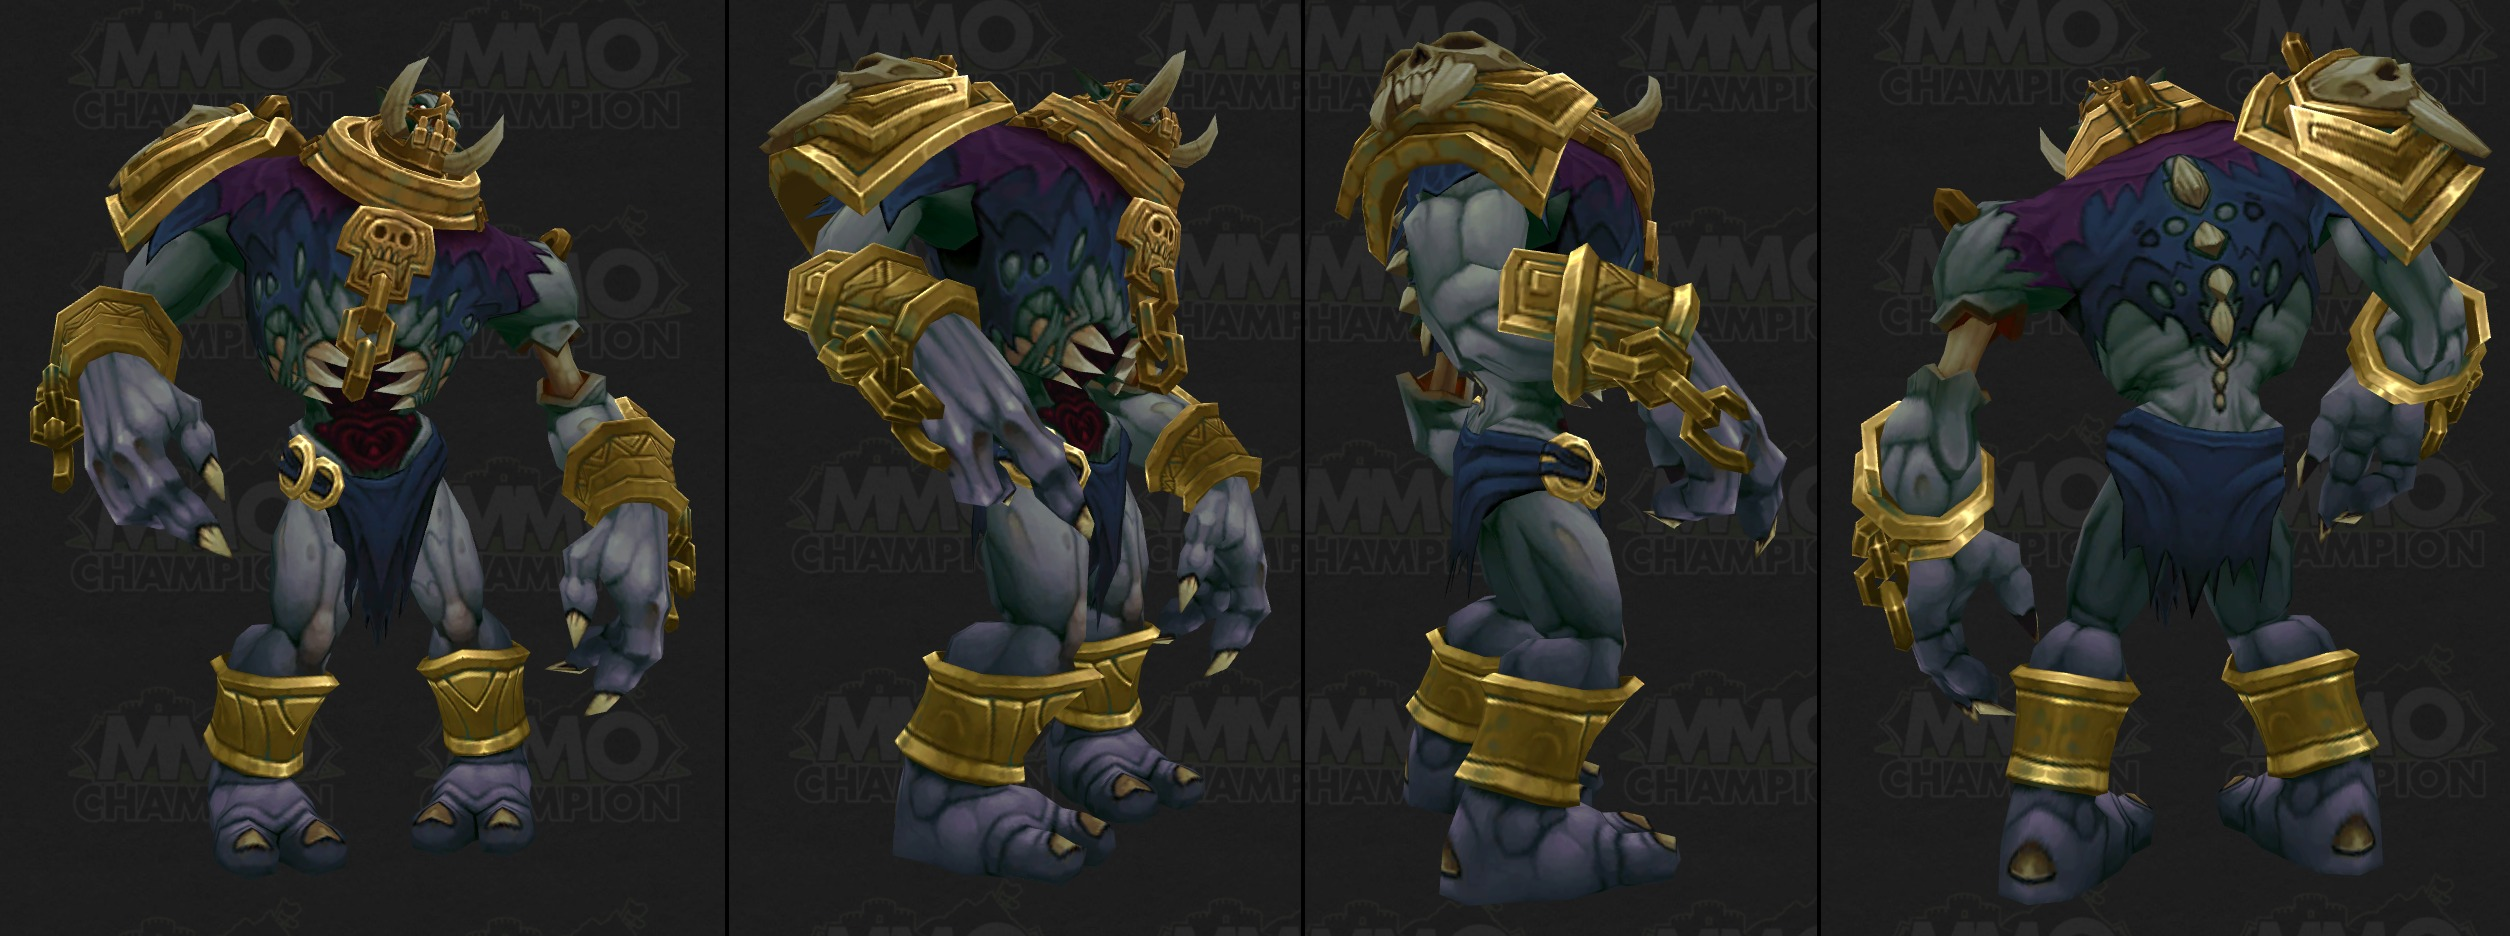 Feedback Zandalari Trolls Missing Heel Toe World Of Warcraft Forums